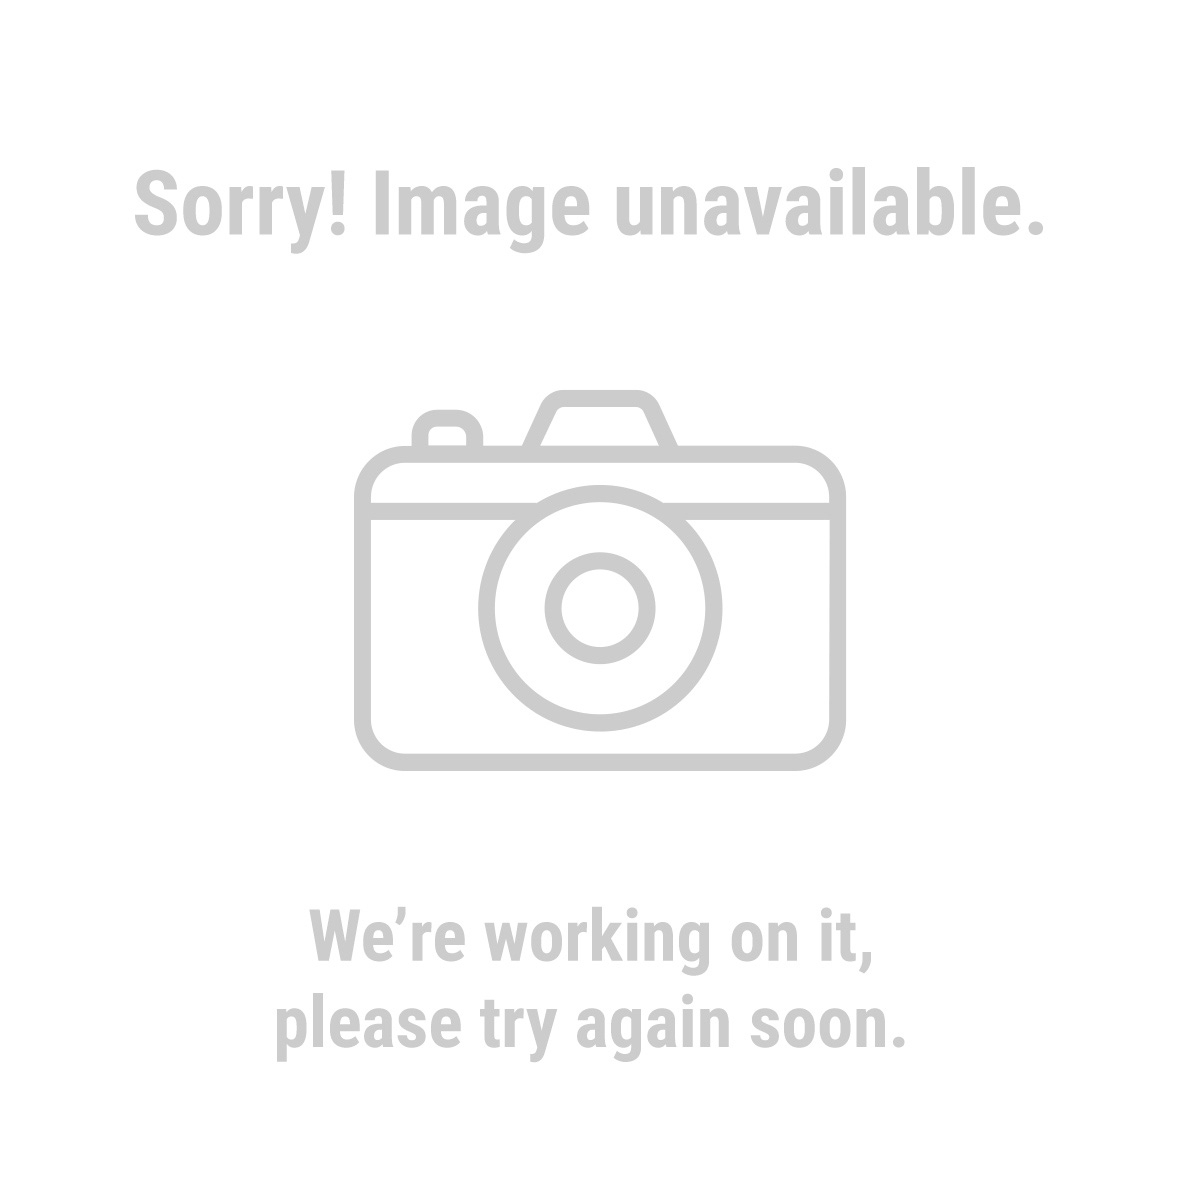 "Haul-Master 60440 1/2"" Diameter Easy Grip Hitch Pin"